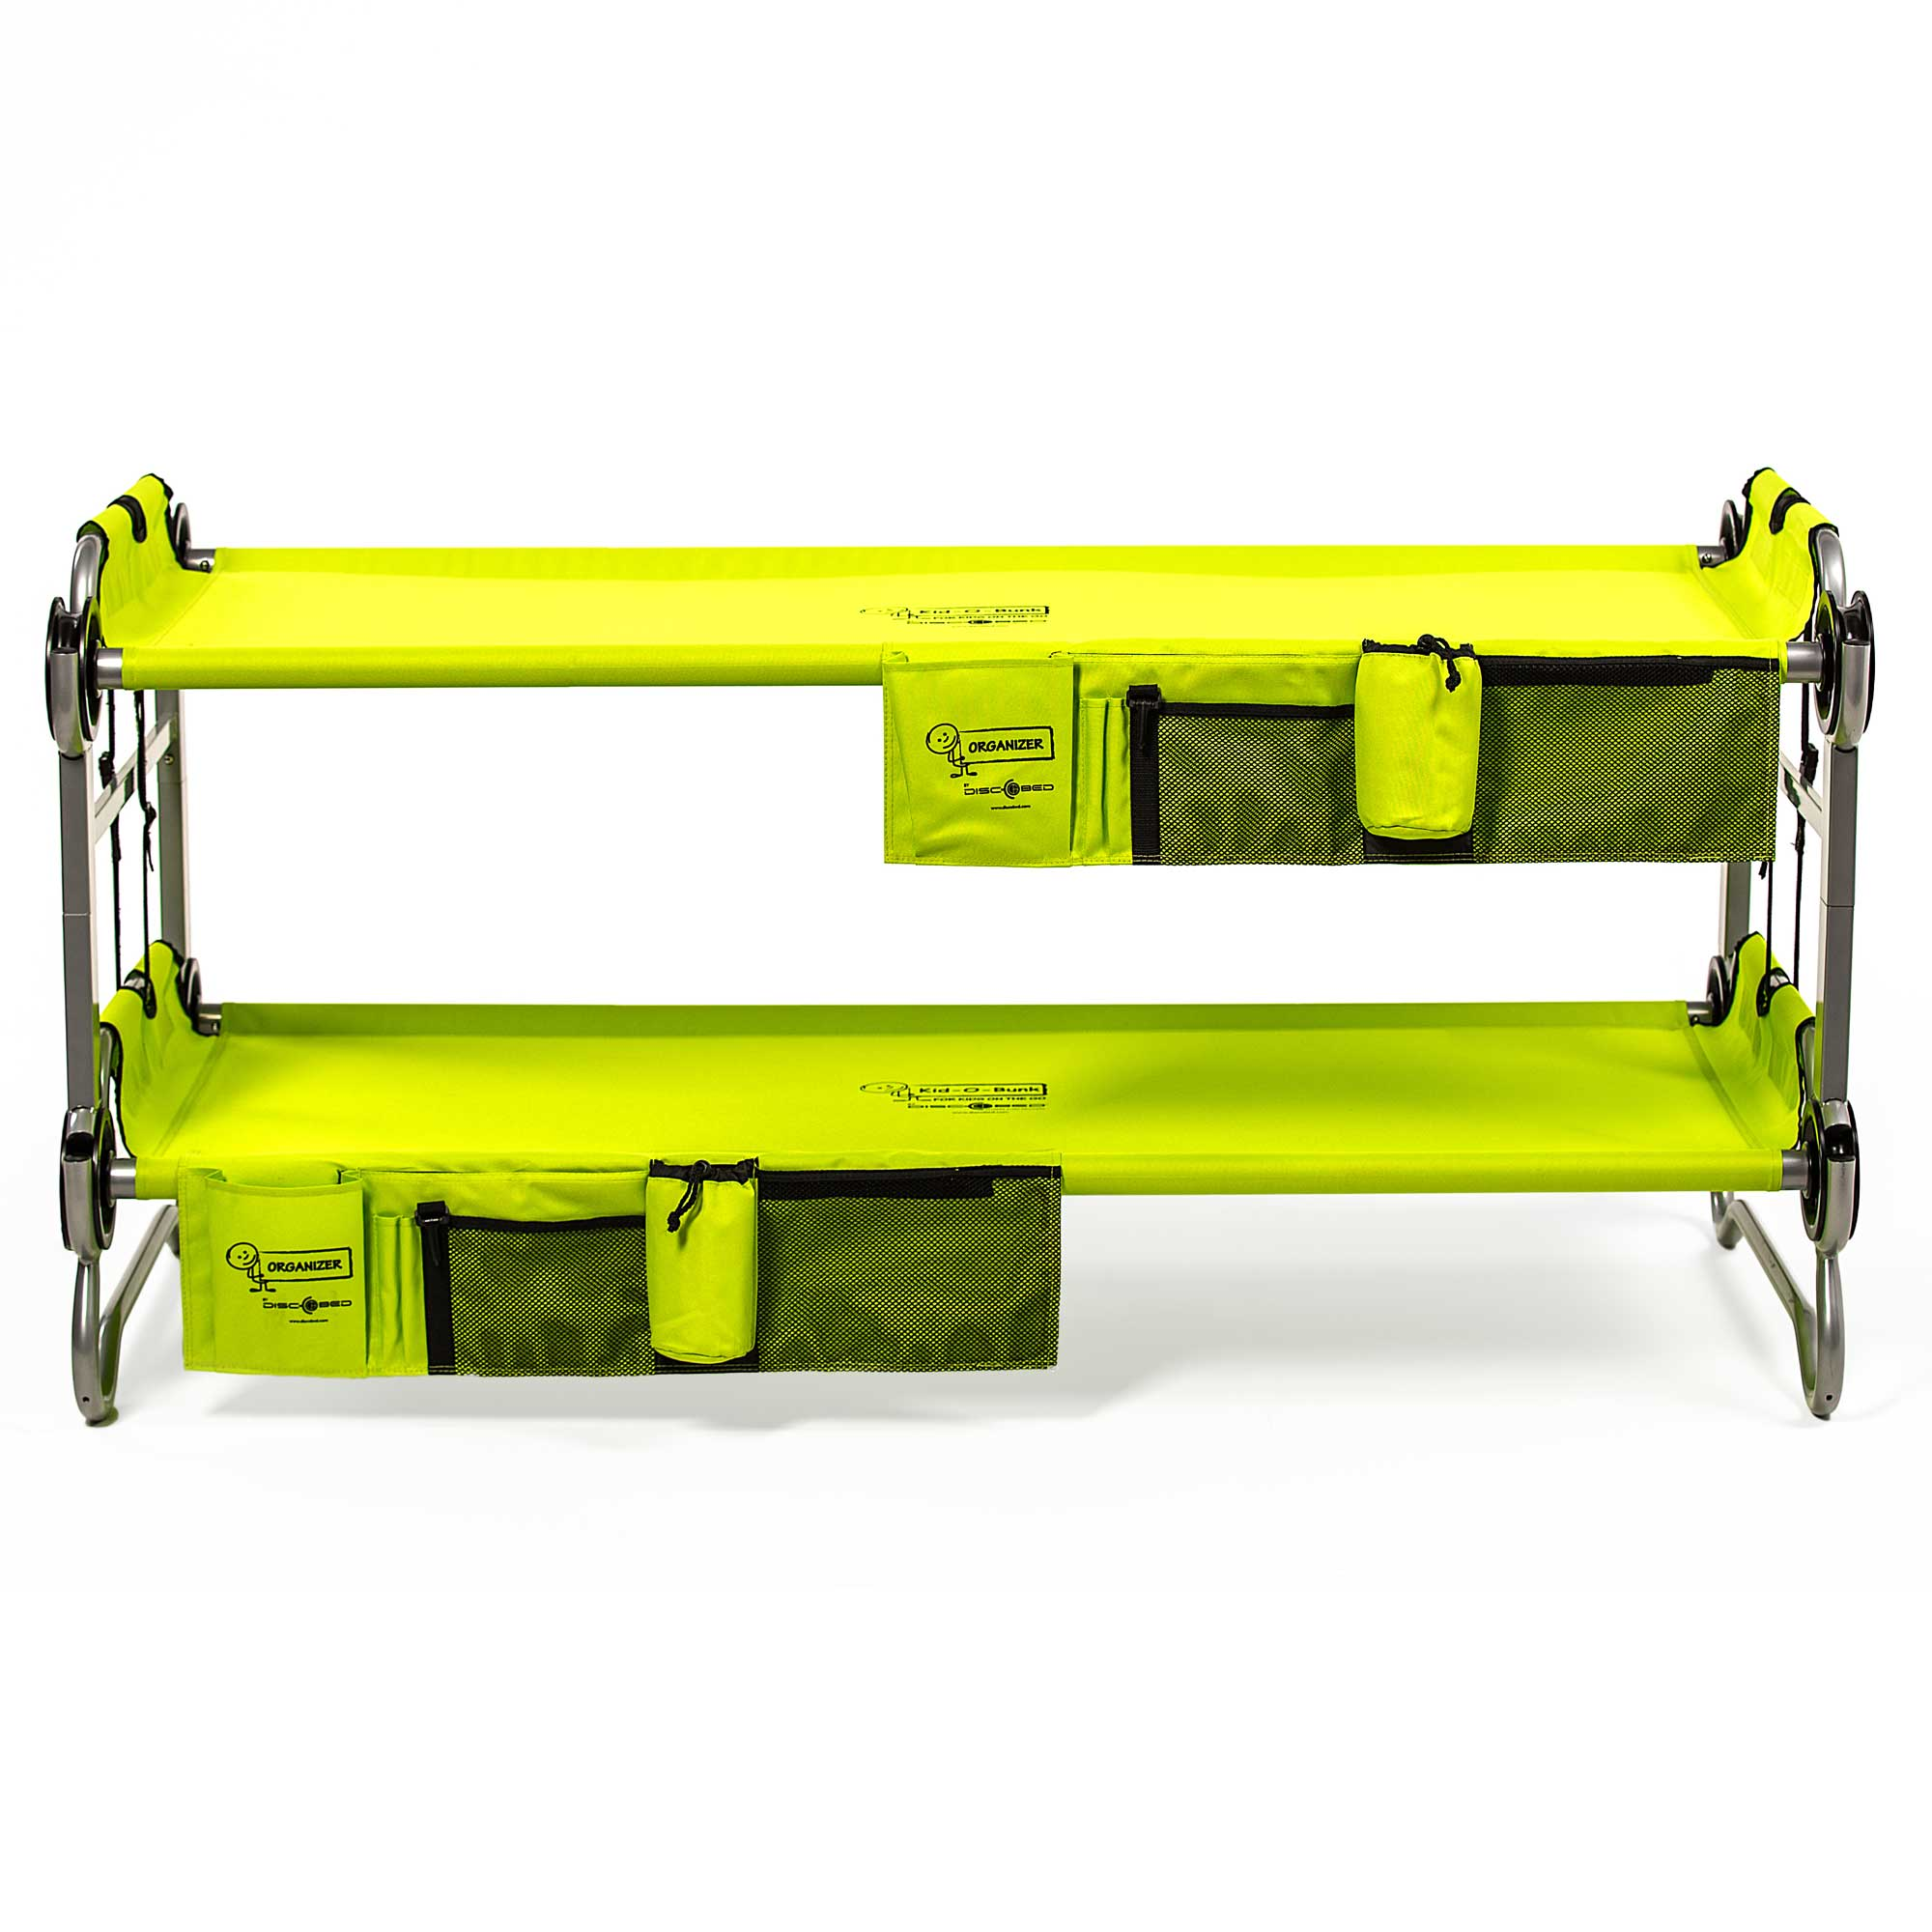 Disc O Bed Youth Kid Bunk Benchable Camping Cot With Organizers Lime Green